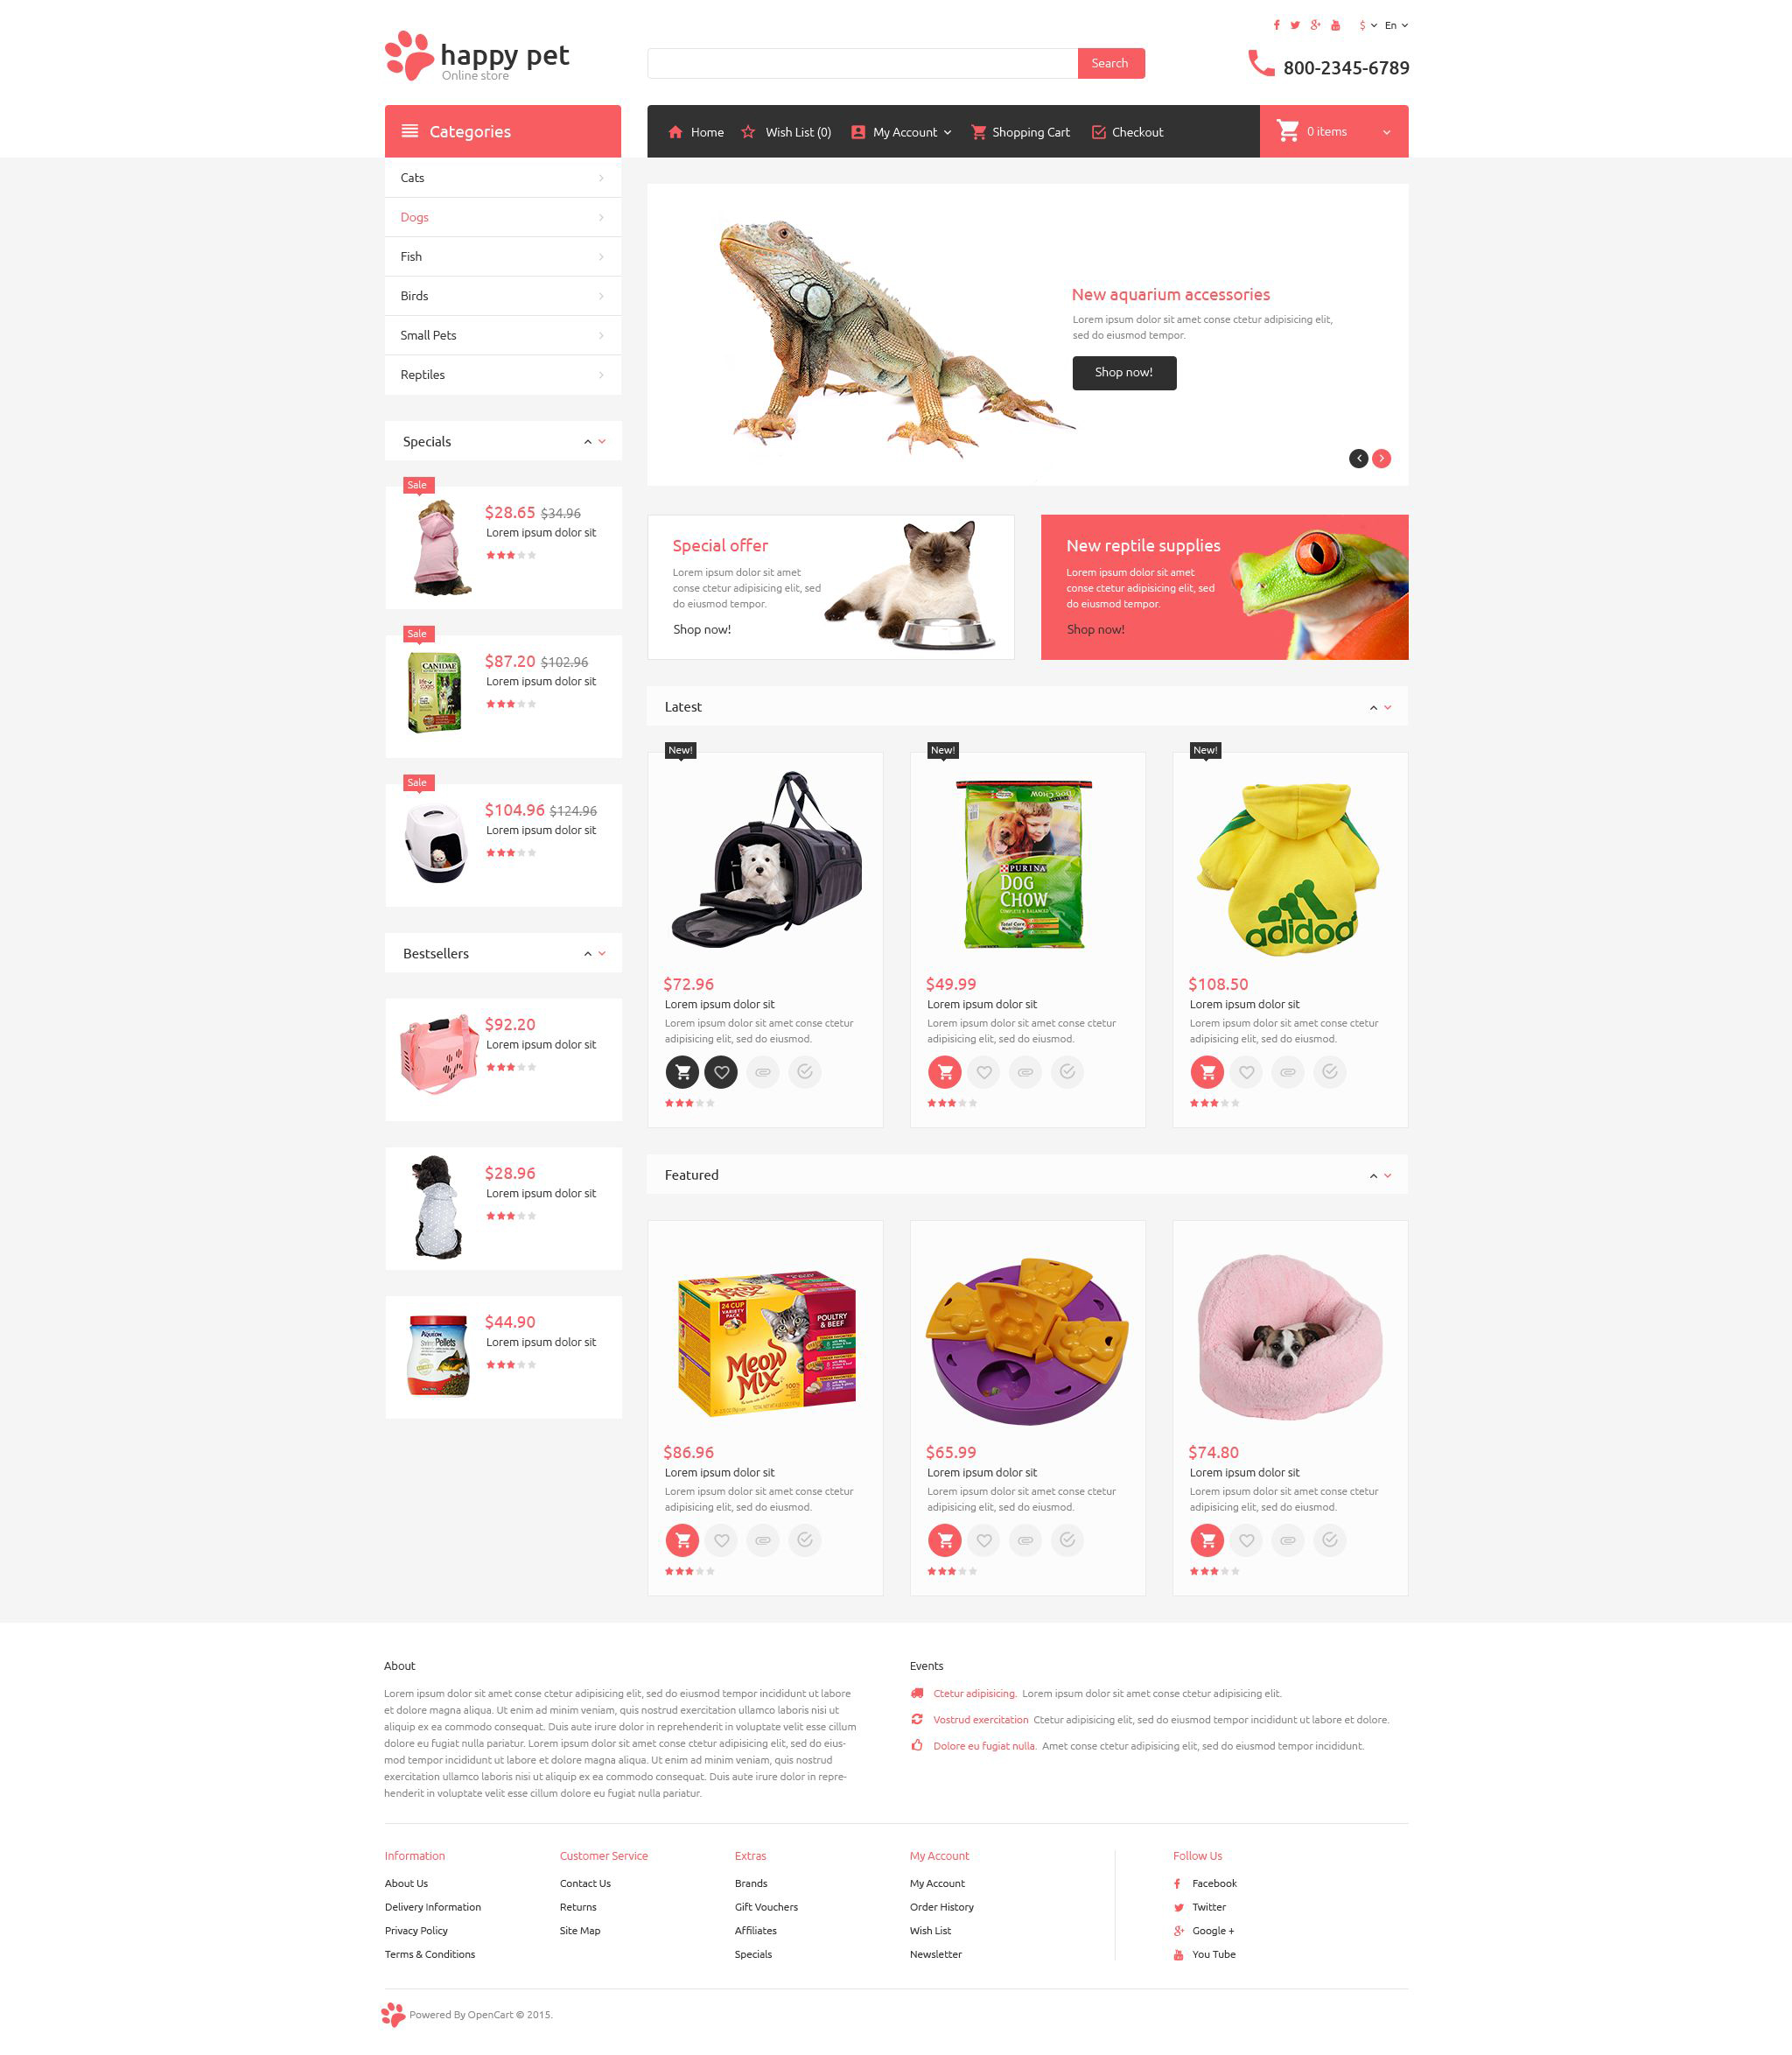 The Pets Online Cat Club OpenCart Design 53712, one of the best OpenCart templates of its kind (animals & pets, most popular), also known as pets online cat club OpenCart template, kitten clinical OpenCart template, veterinary OpenCart template, vet OpenCart template, tips OpenCart template, feed OpenCart template, medicine OpenCart template, staff OpenCart template, services OpenCart template, breed OpenCart template, age OpenCart template, color OpenCart template, accommodation OpenCart template, adaptable OpenCart template, pet OpenCart template, apparel OpenCart template, bed OpenCart template, dishes OpenCart template, bowl OpenCart template, bone OpenCart template, cleanup OpenCart template, collar OpenCart template, flea OpenCart template, tick OpenCart template, grooming OpenCart template, supplies OpenCart template, vitamins OpenCart template, recommendation OpenCart template, health OpenCart template, leash and related with pets online cat club, kitten clinical, veterinary, vet, tips, feed, medicine, staff, services, breed, age, color, accommodation, adaptable, pet, apparel, bed, dishes, bowl, bone, cleanup, collar, flea, tick, grooming, supplies, vitamins, recommendation, health, leash, etc.